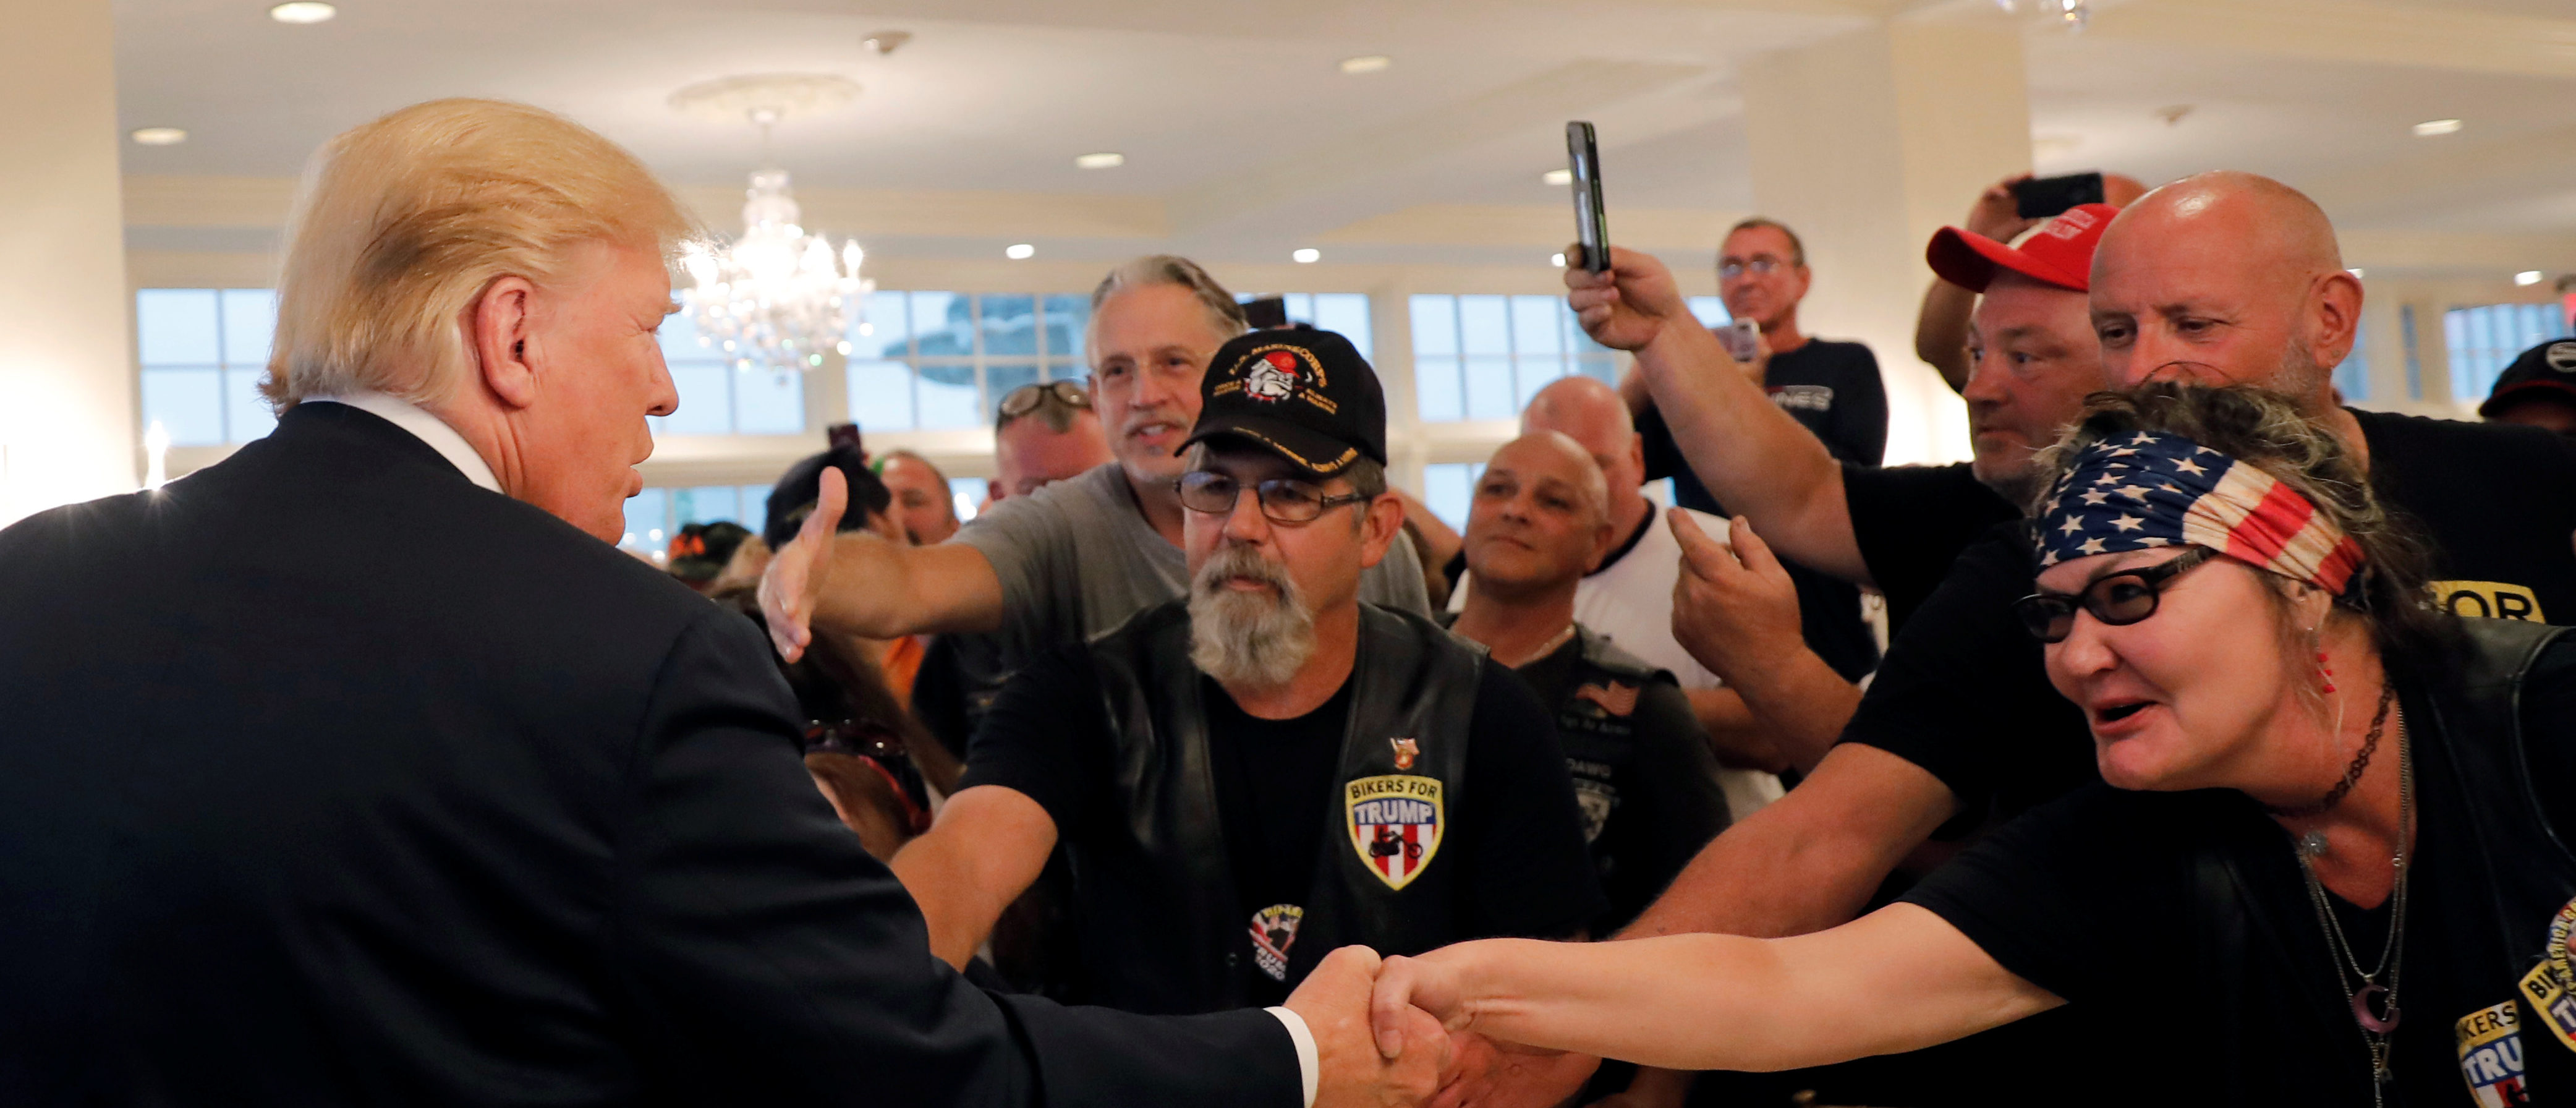 'Bikers For Trump' Event Got Rained Out, So The President Invited Them All Inside